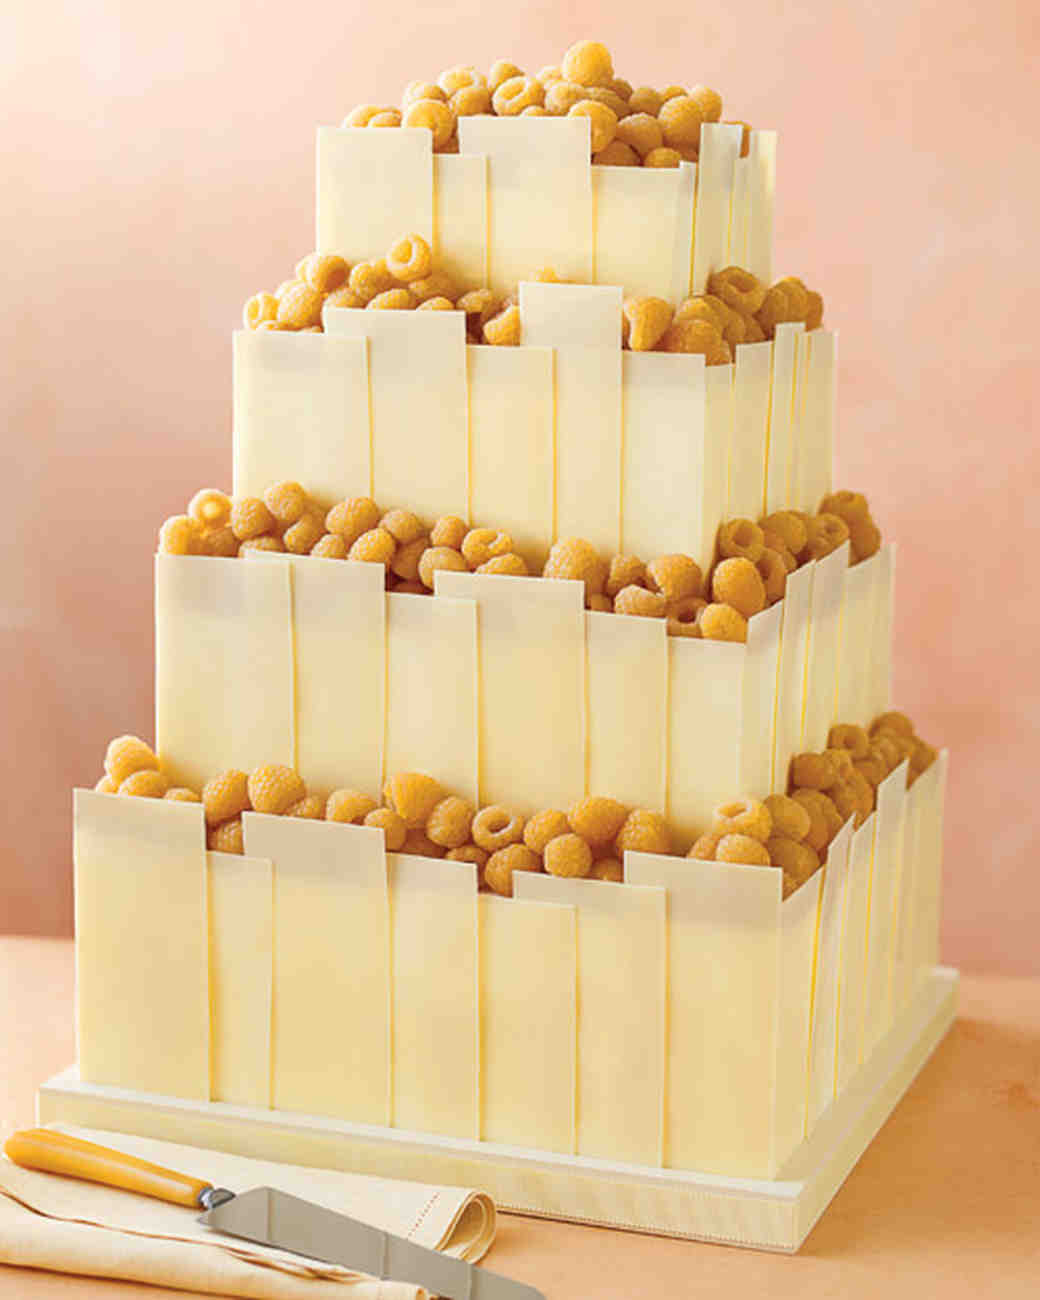 Almond wedding cake recipe from scratch